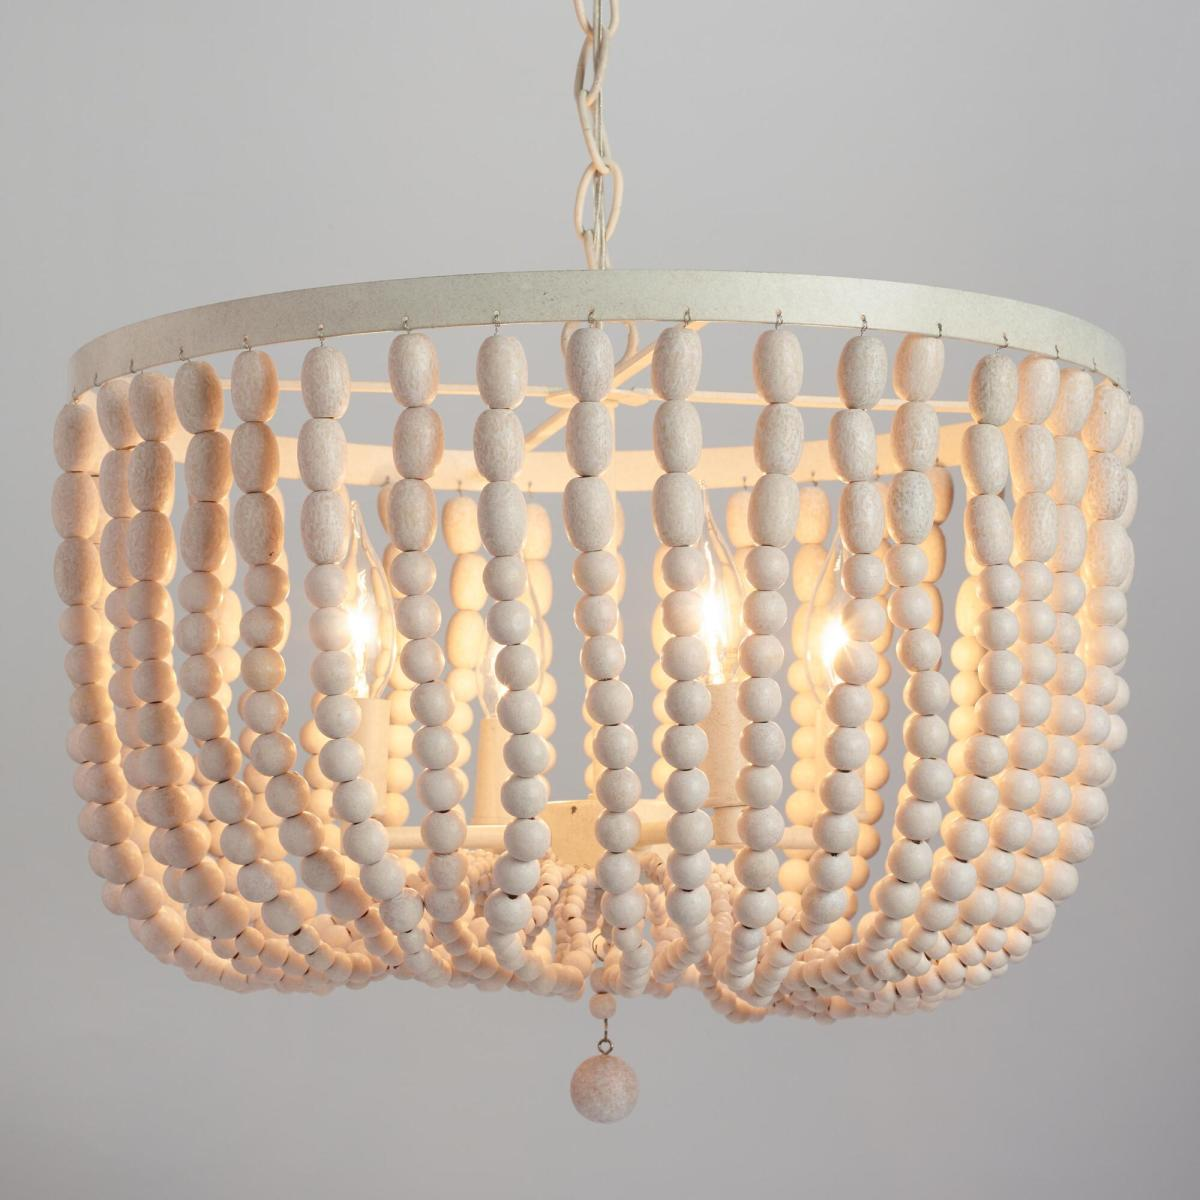 Wooden beads chandeliers and ceiling lamps 05